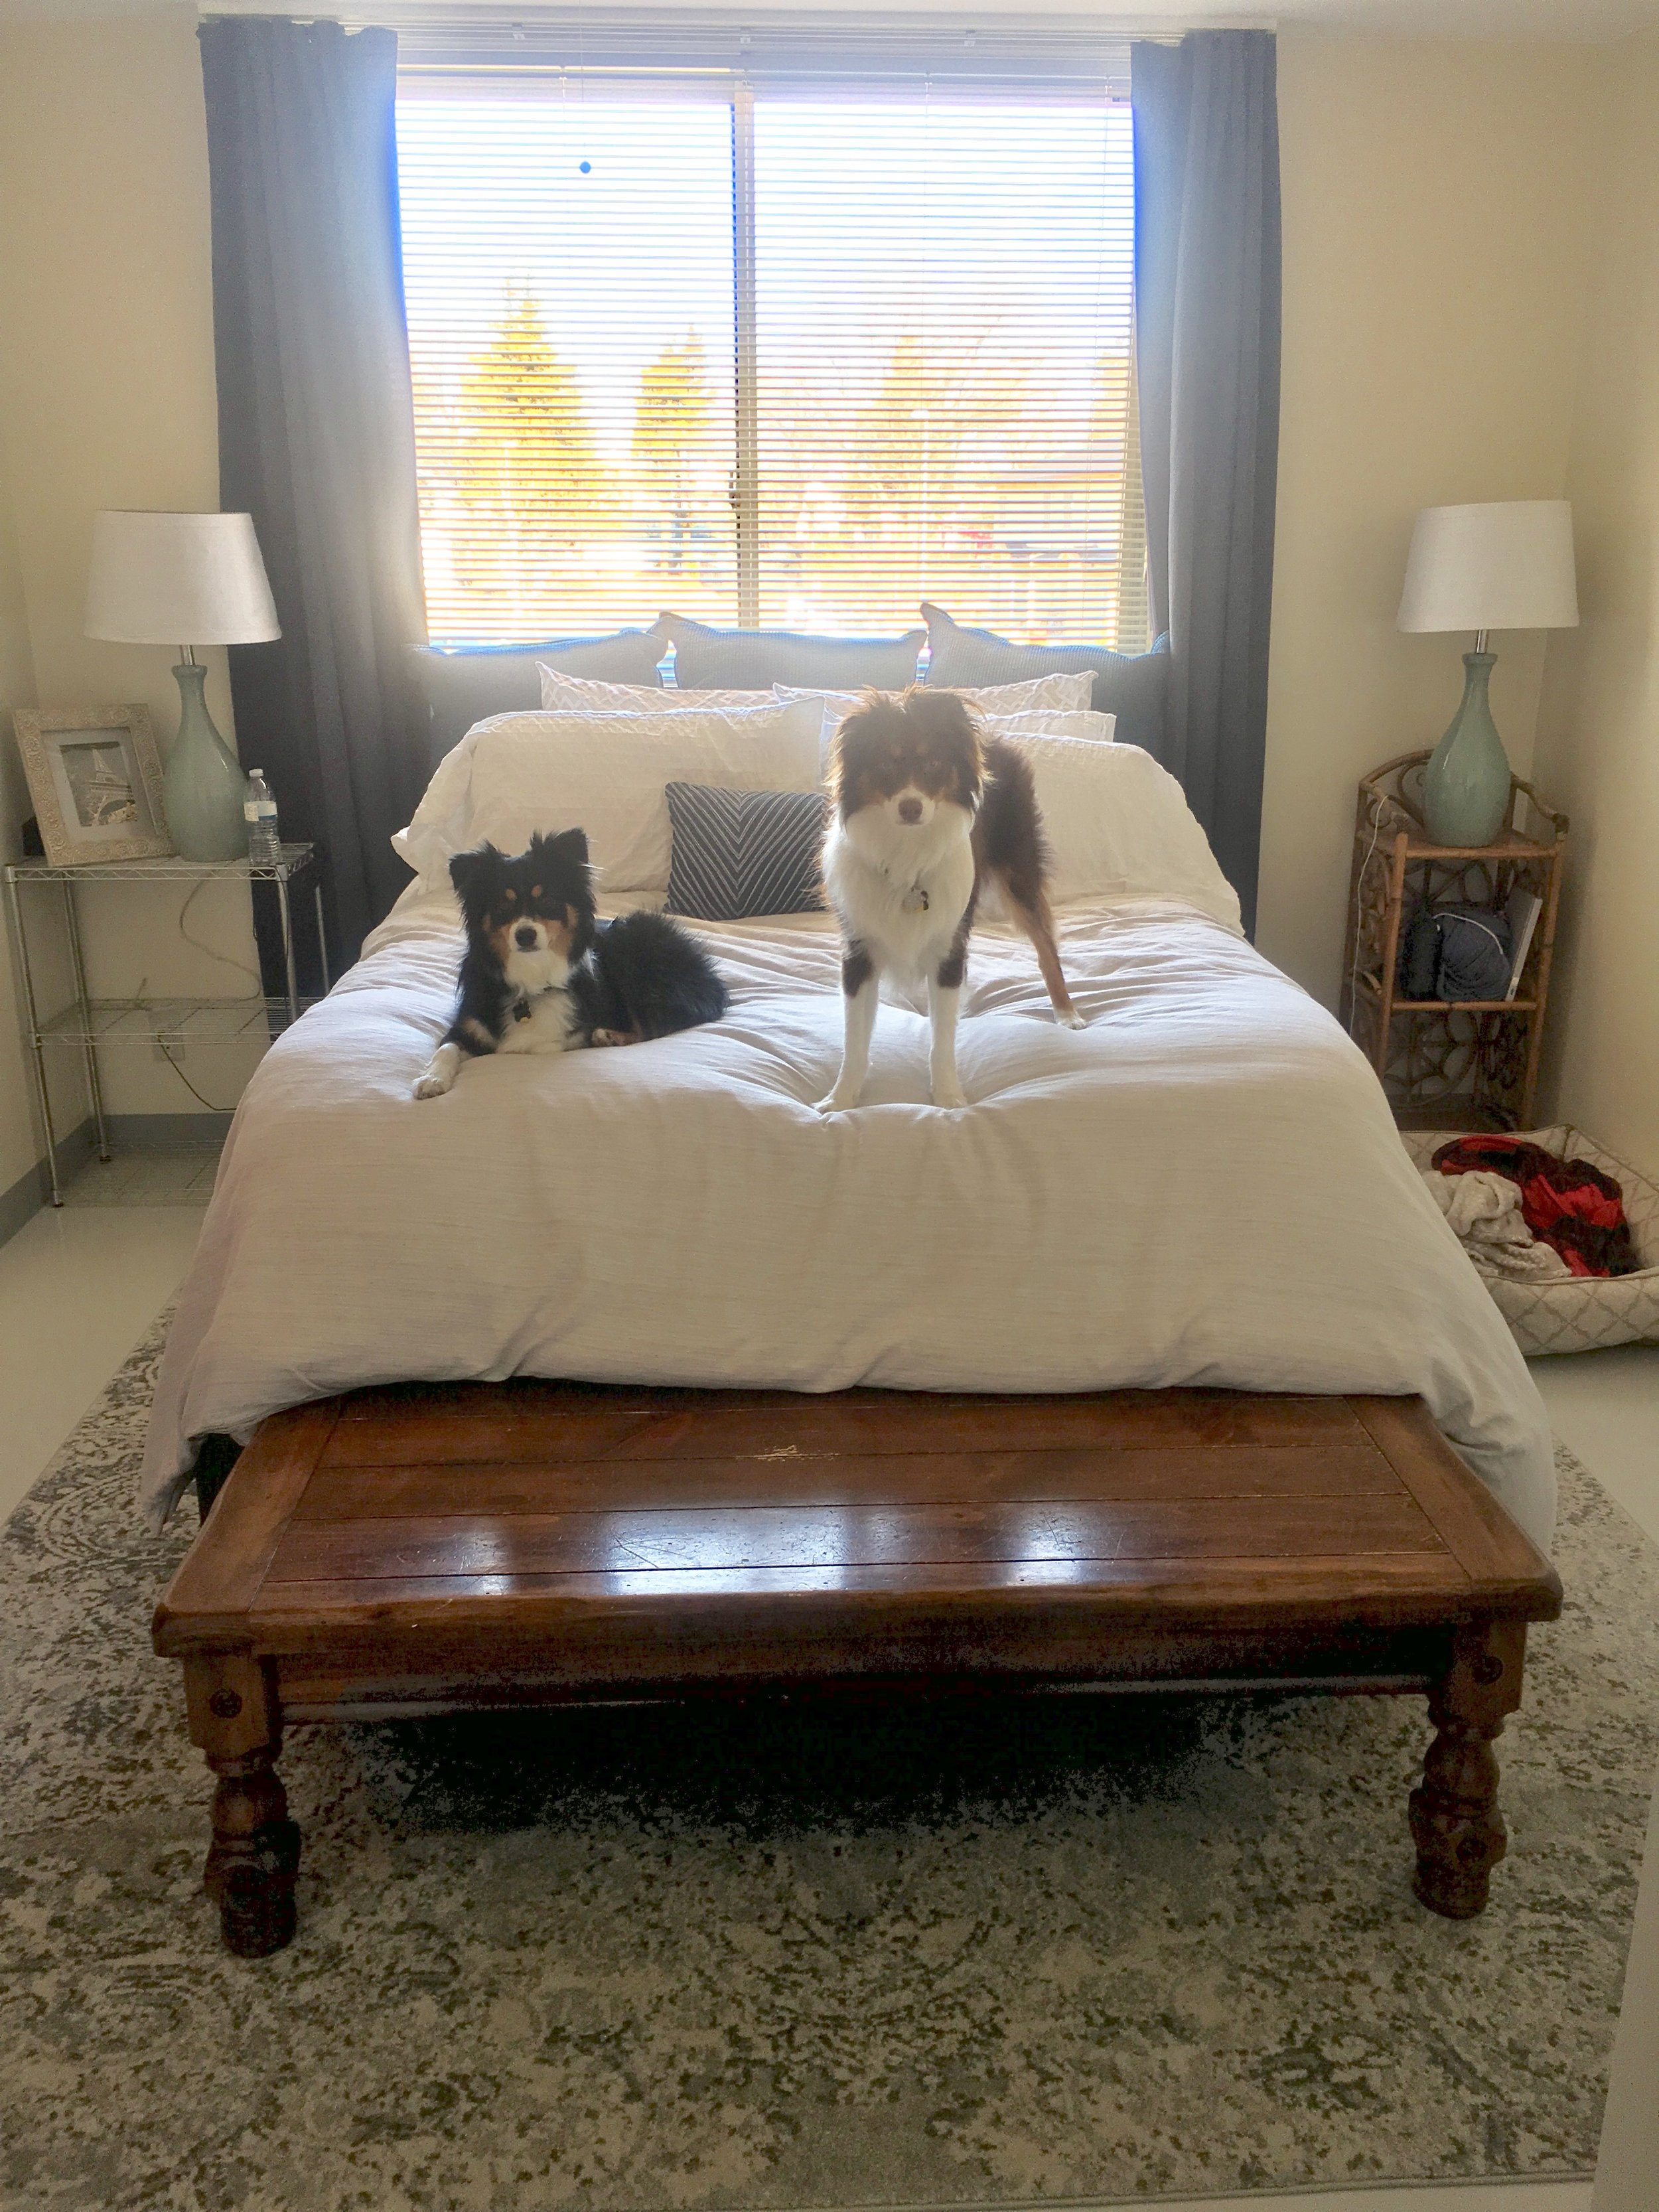 Pups on the Bed.jpg